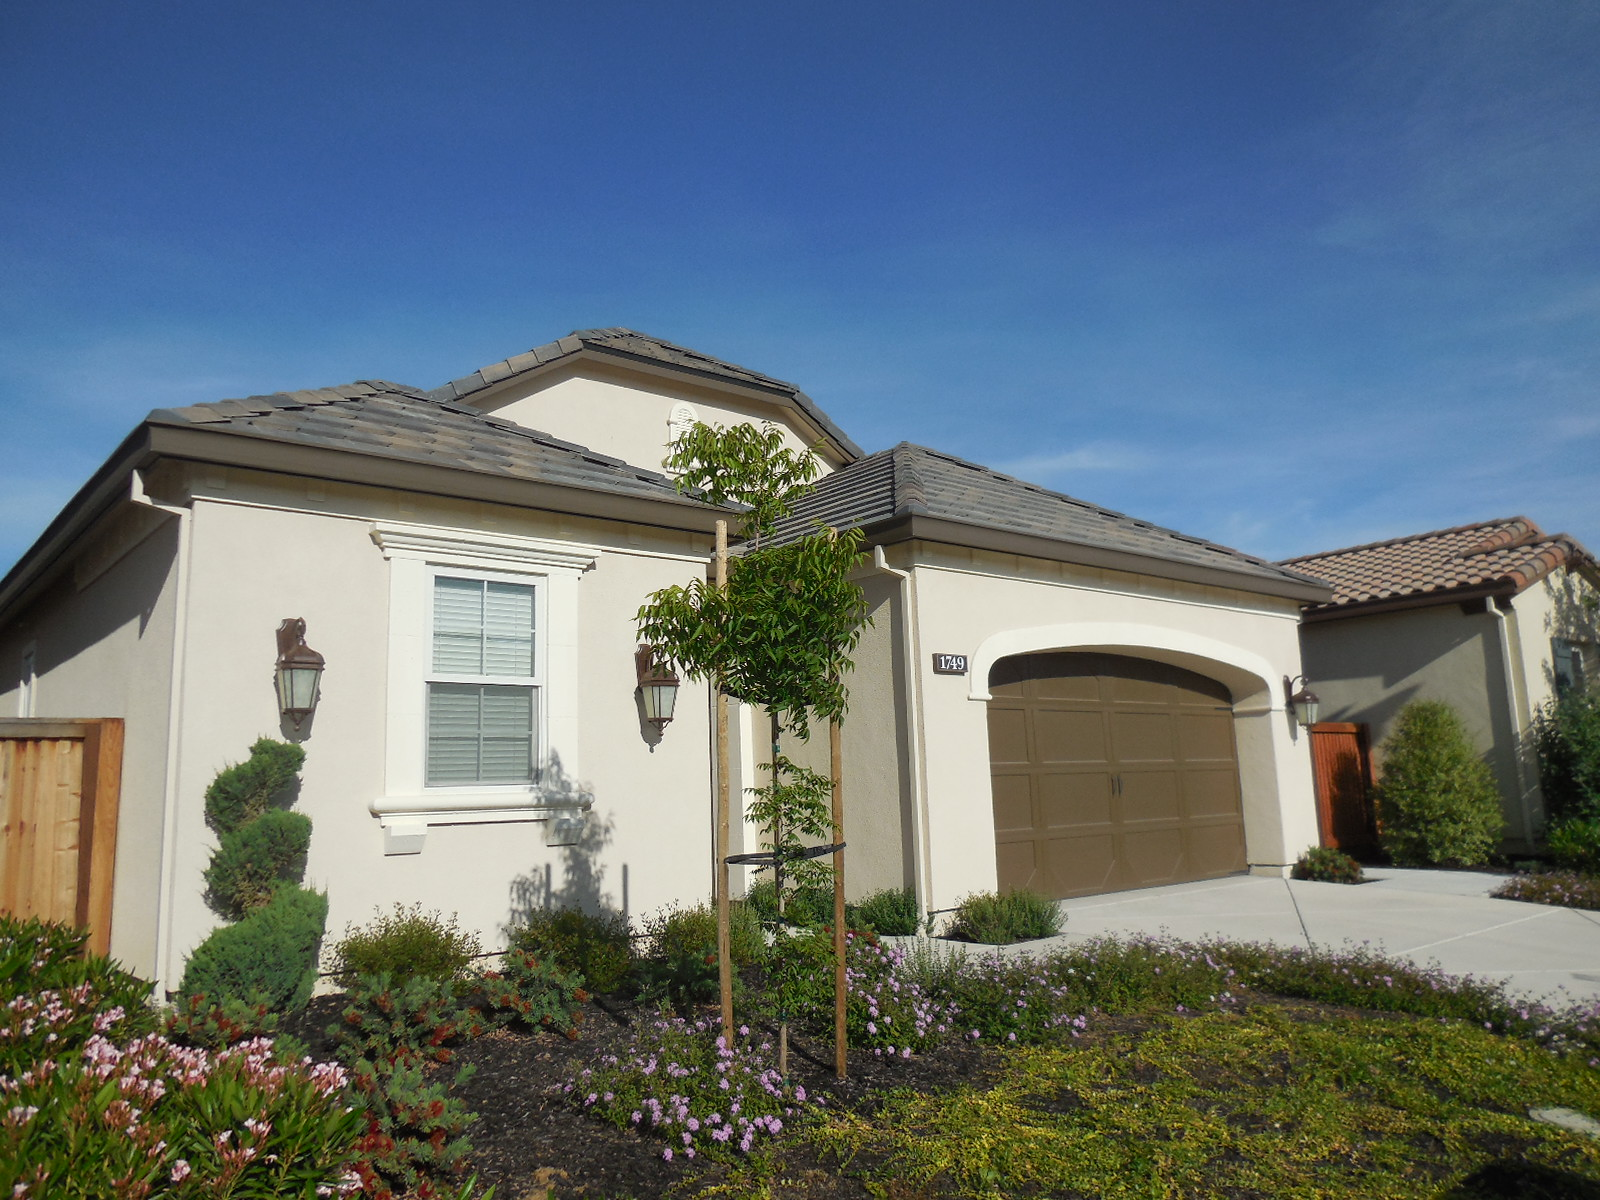 Single Family Home for Sale at Trilogy at the Vineyards 1749 Veneto Lane Brentwood, California 94513 United States